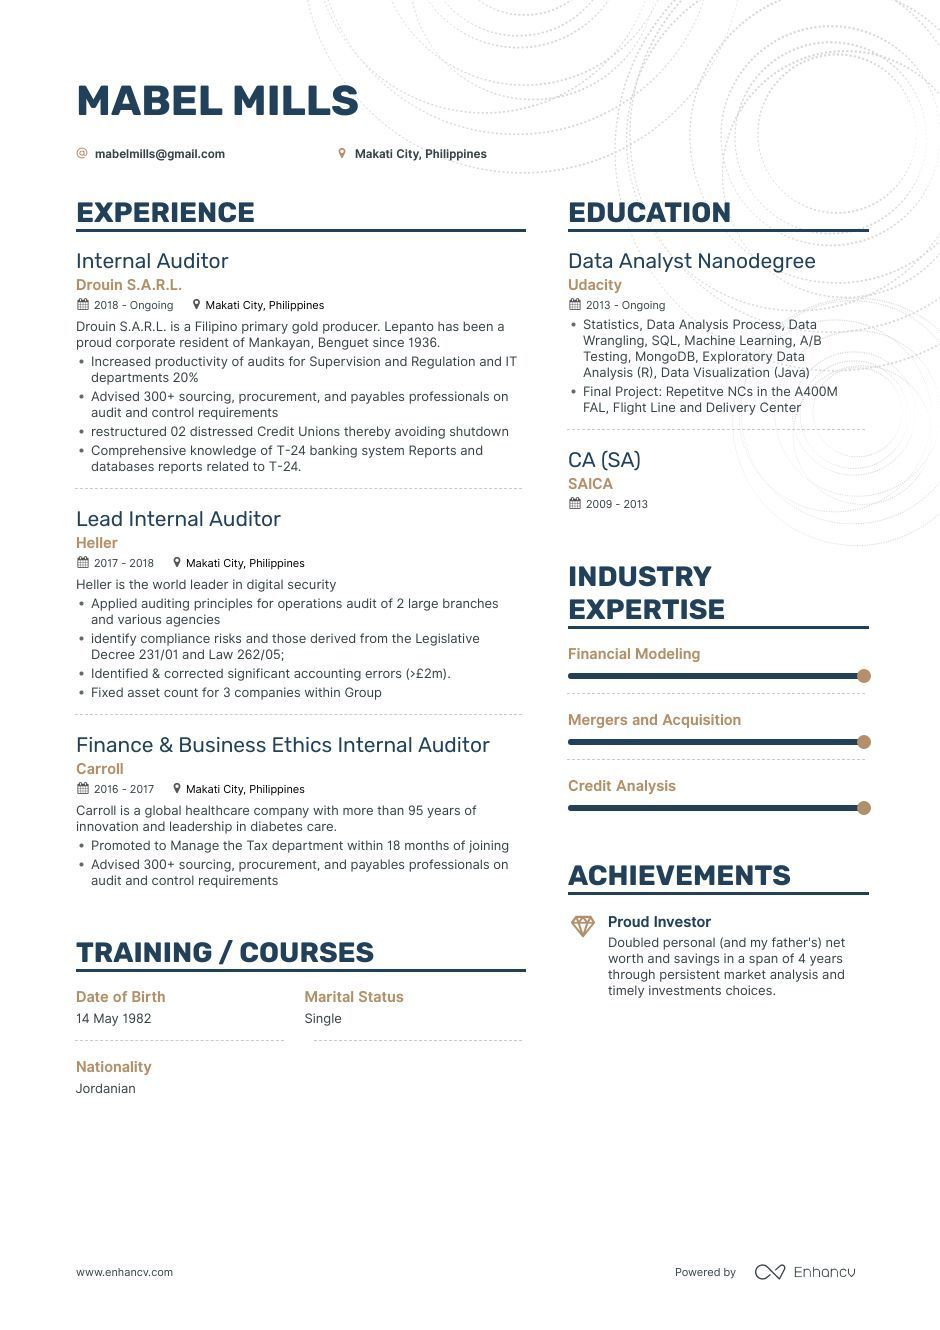 +7 Quick Cv examples student ideas in 2020 Resume